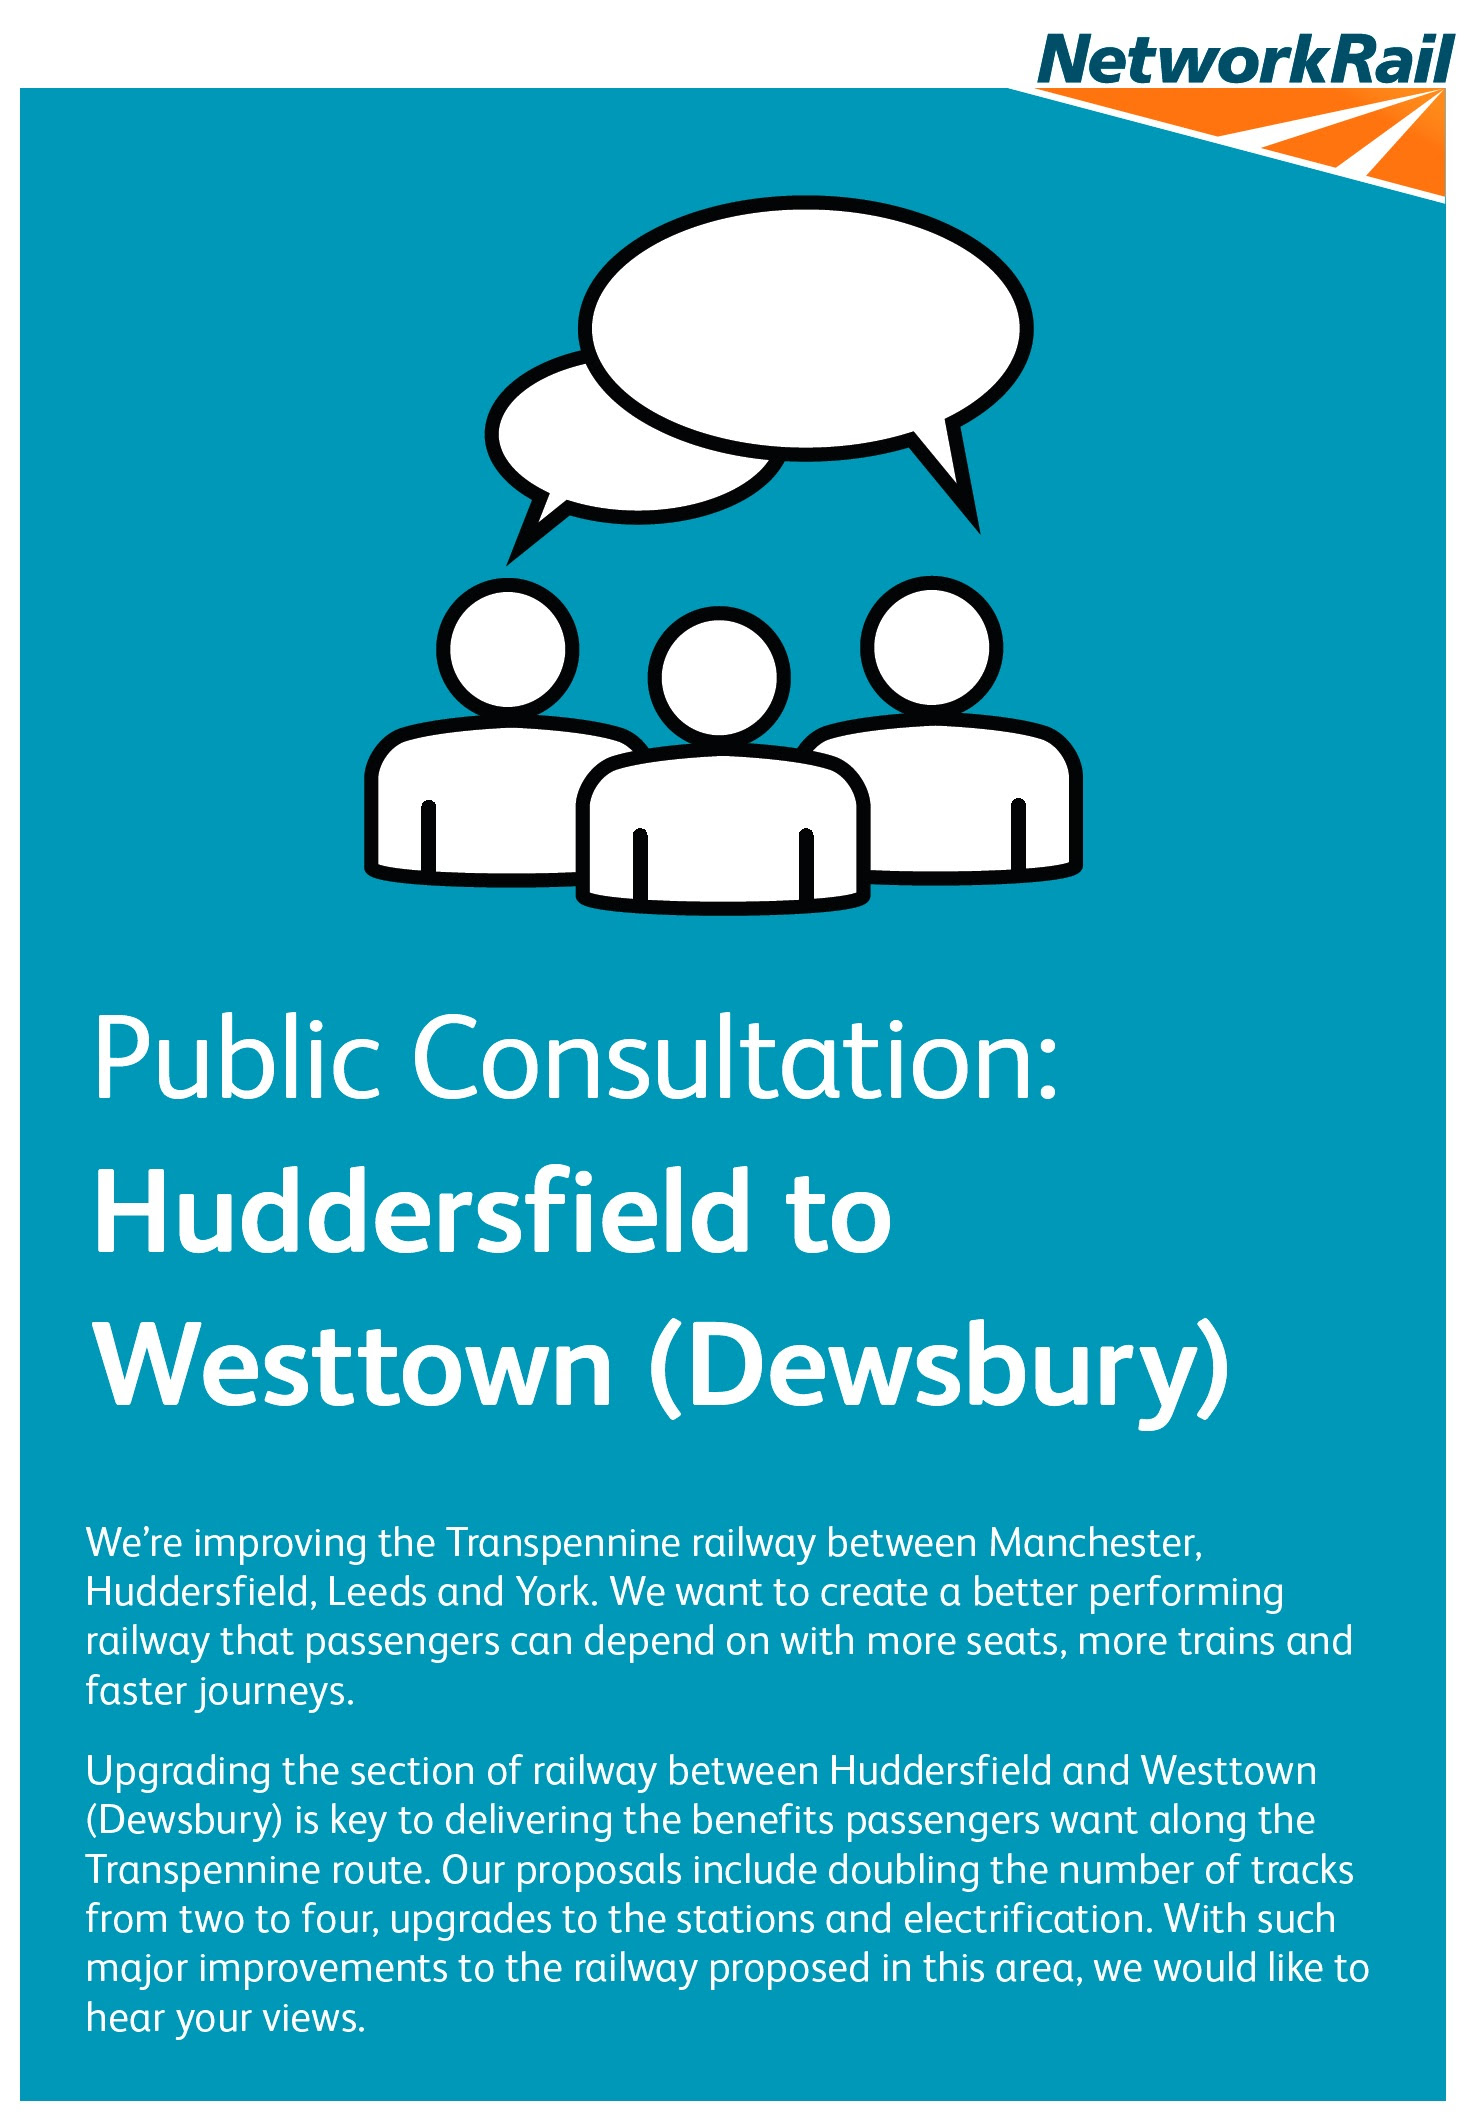 Public consultation on major rail upgrade to begin in West Yorkshire